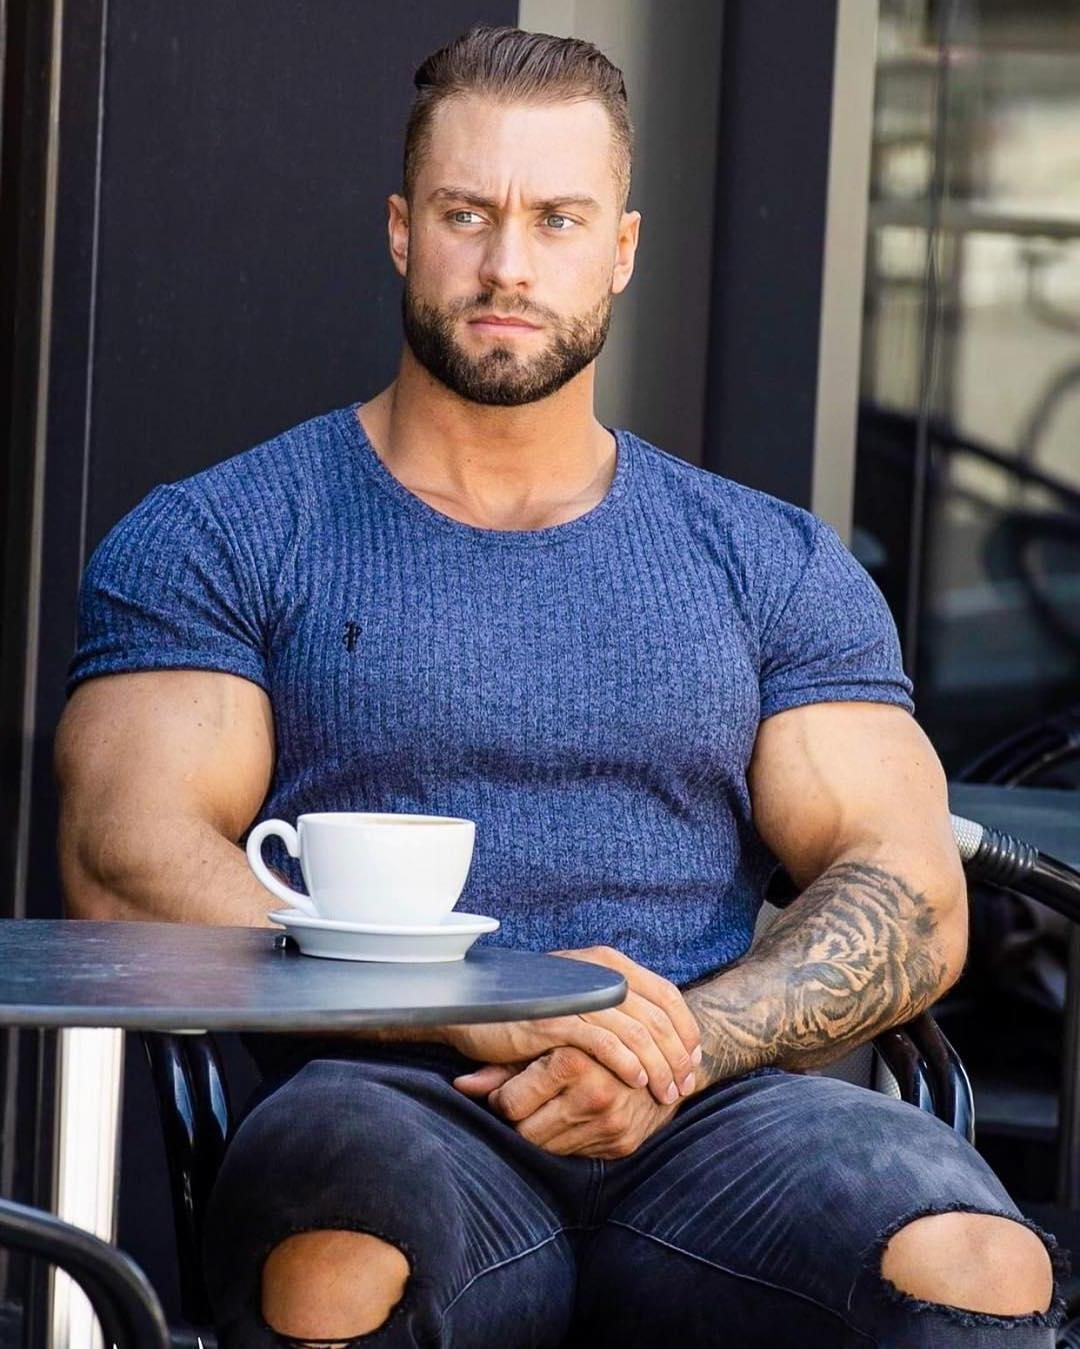 huge-beefy-dilf-muscle-biceps-daddy-gentleman-fashionista-sitting-caffe